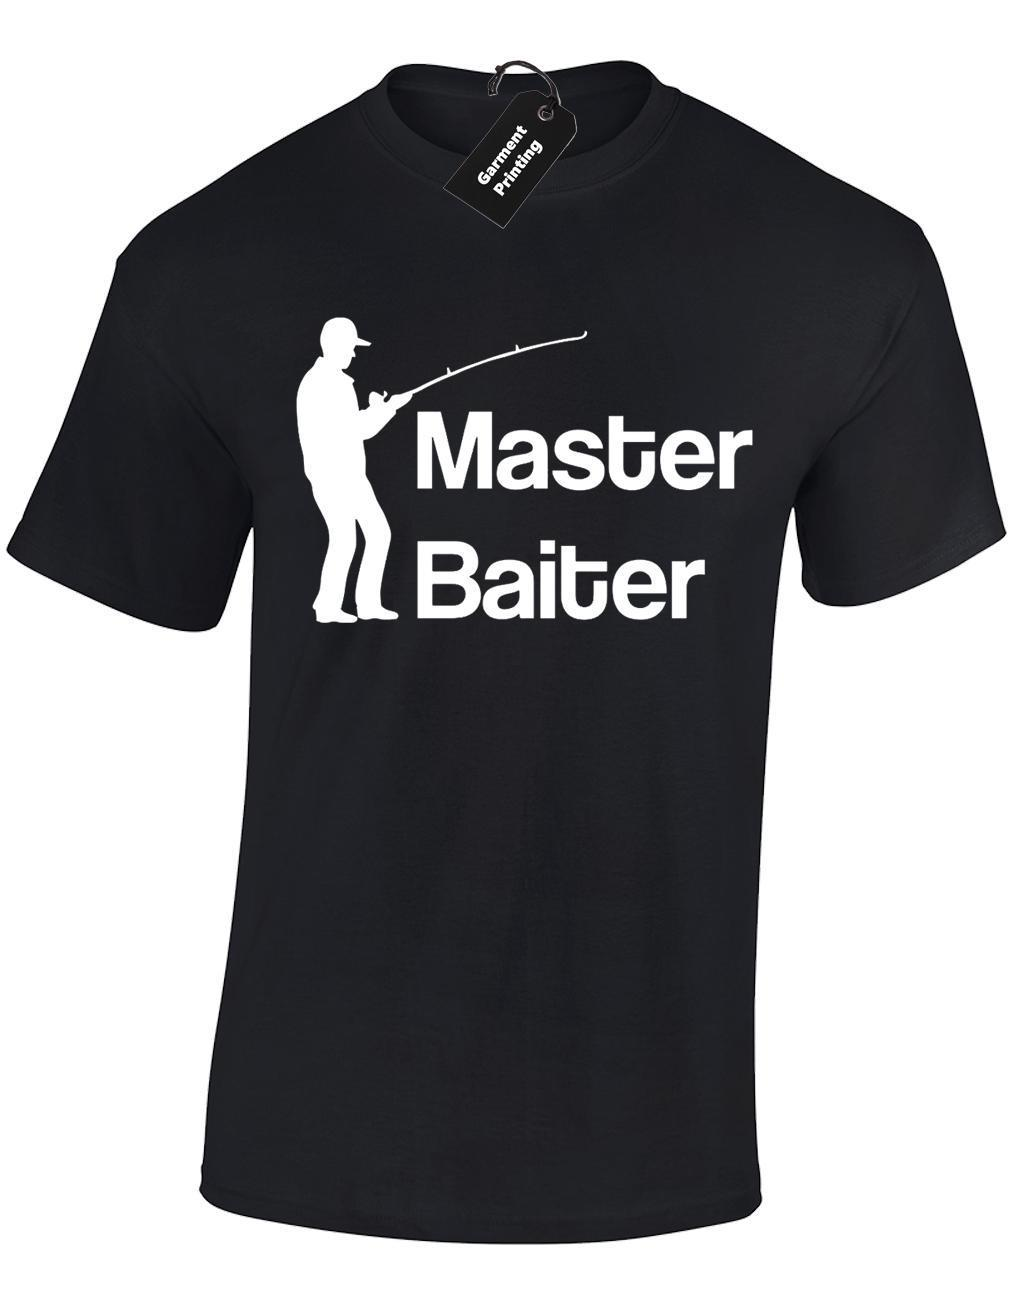 49f65de3c MASTER BAITER MENS T SHIRT FUNNY FISHERMAN FISHING GIFT PRESENT IDEA TOP S  5XL Ridiculous T Shirts One Day T Shirts From Amesion34, $12.08| DHgate.Com